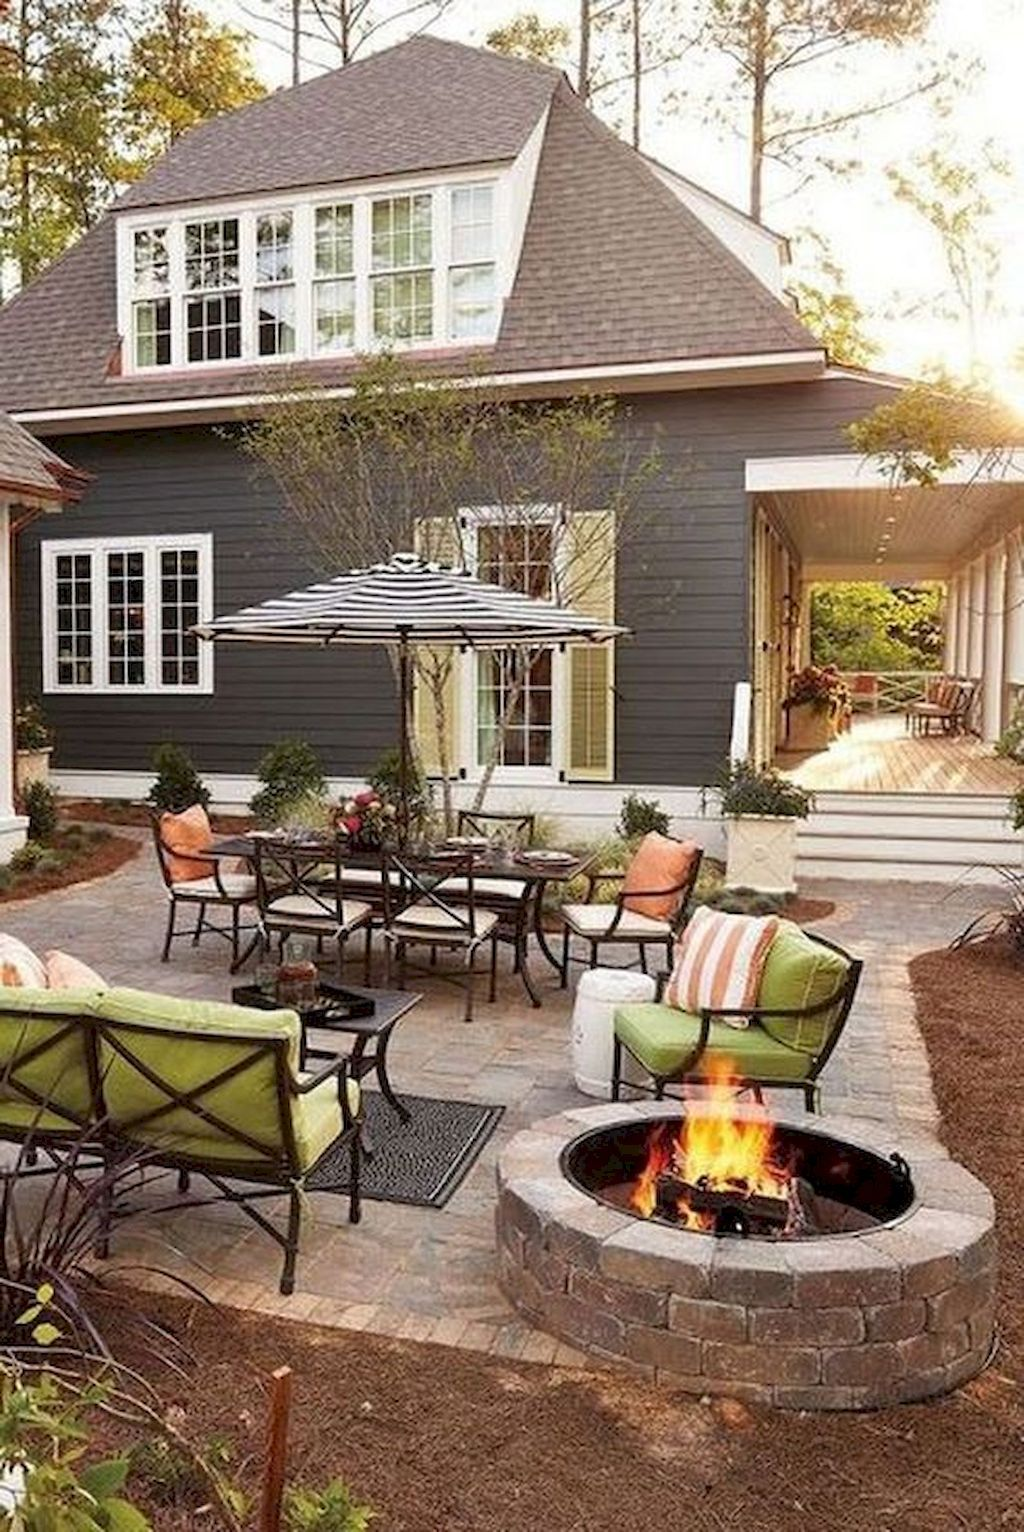 70 easy diy outdoor fire pit and cozy seating area ideas on modern deck patio ideas for backyard design and decoration ideas id=78283